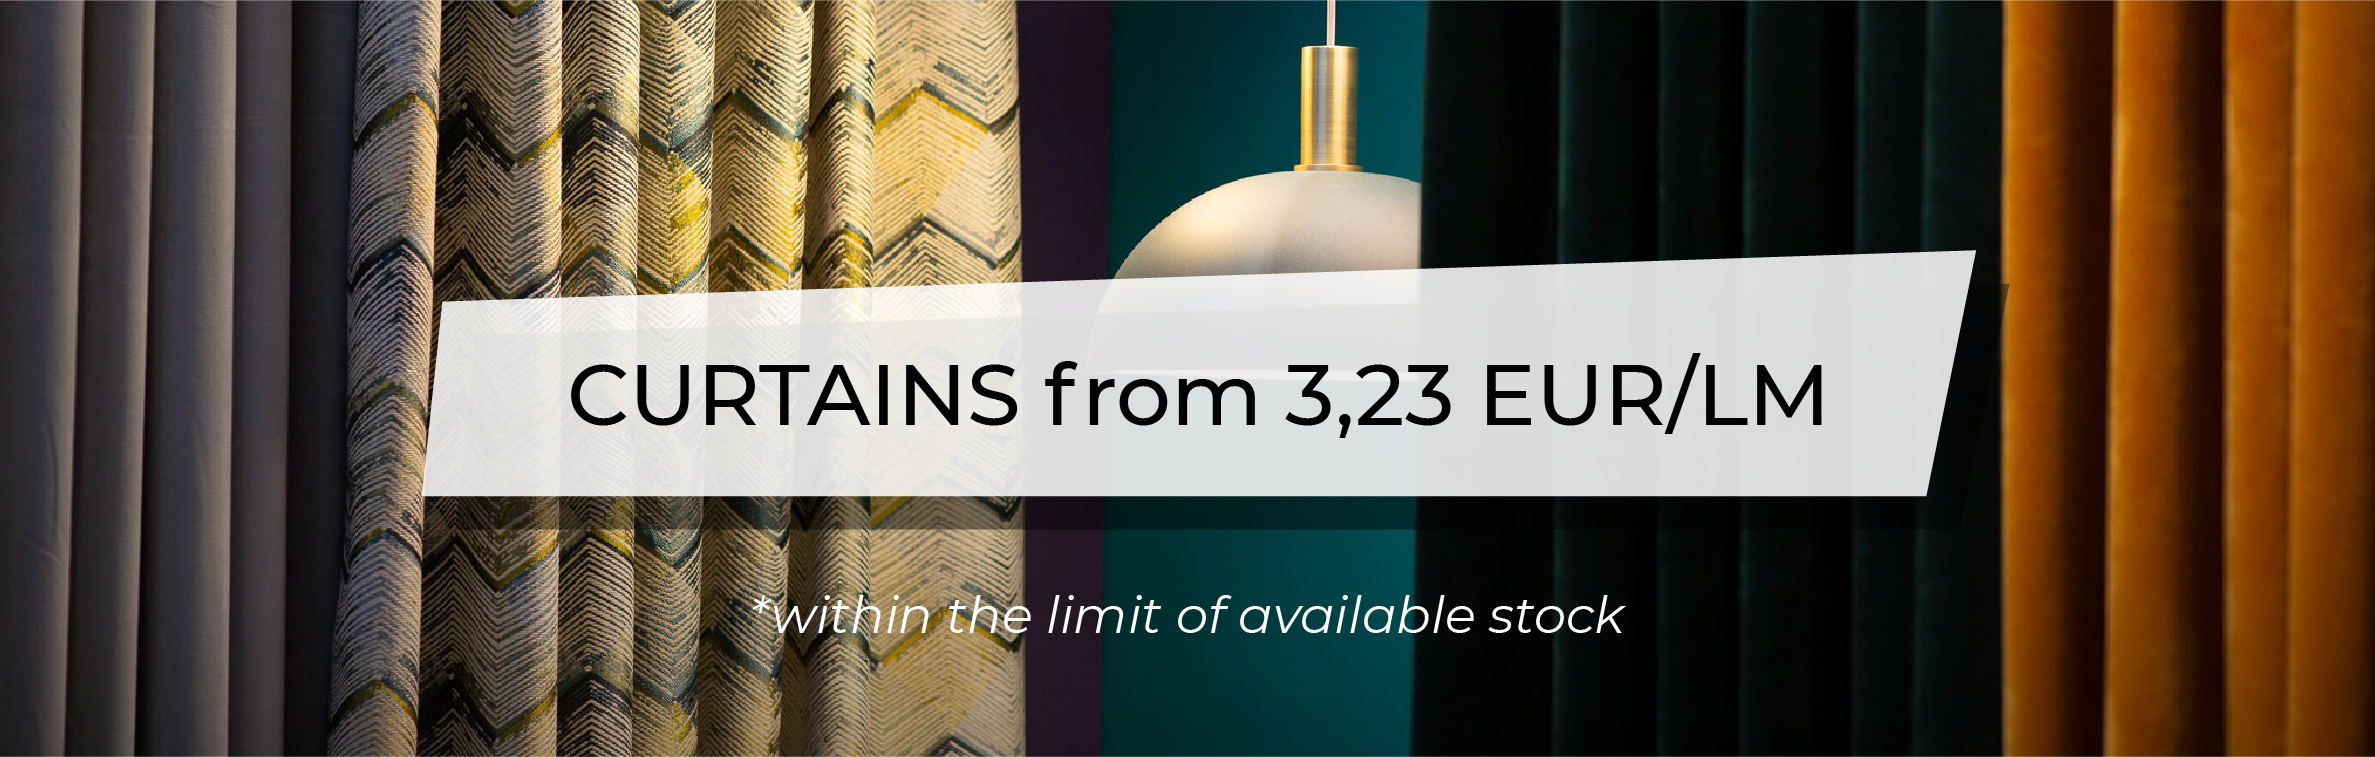 December Promotions - Curtains from 3,23 EUR/ML